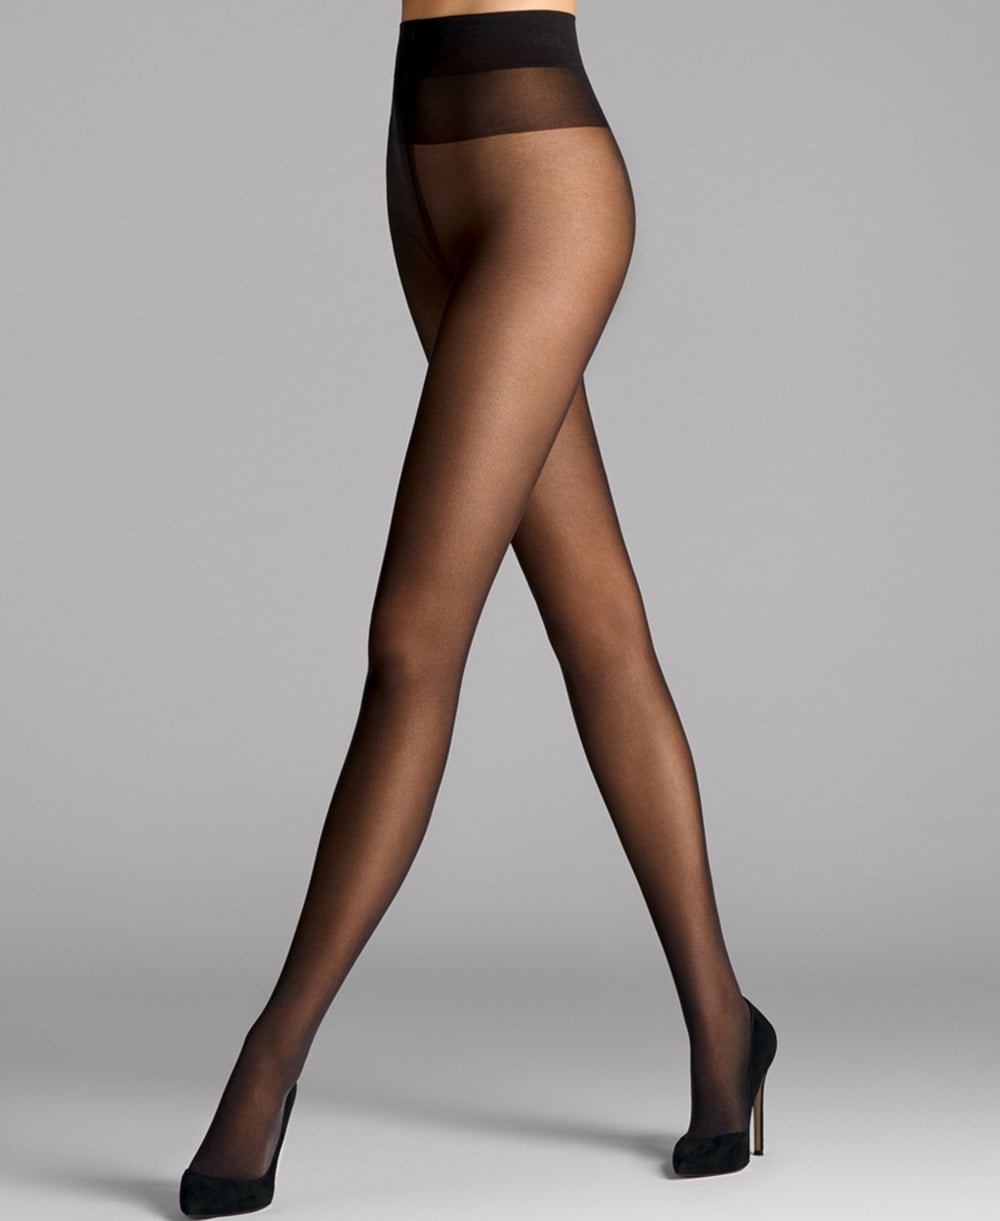 Buy wolford pantyhose images 263